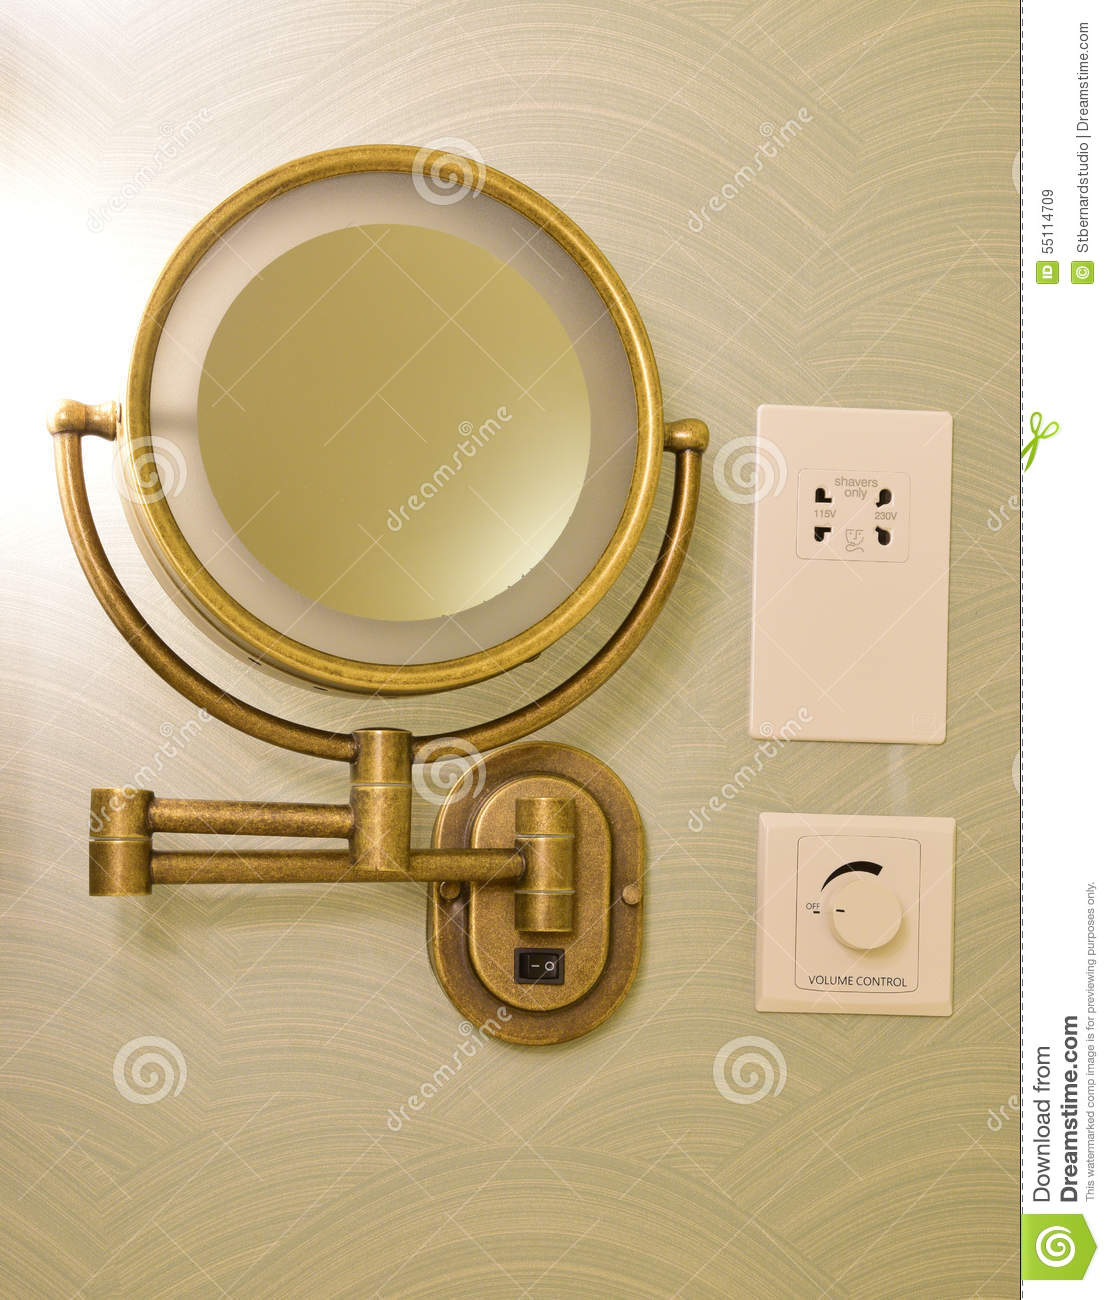 Vintage look brass adjustable wall mount magnifying mirror on half royalty free stock photo download vintage look brass adjustable wall mount magnifying mirror amipublicfo Gallery